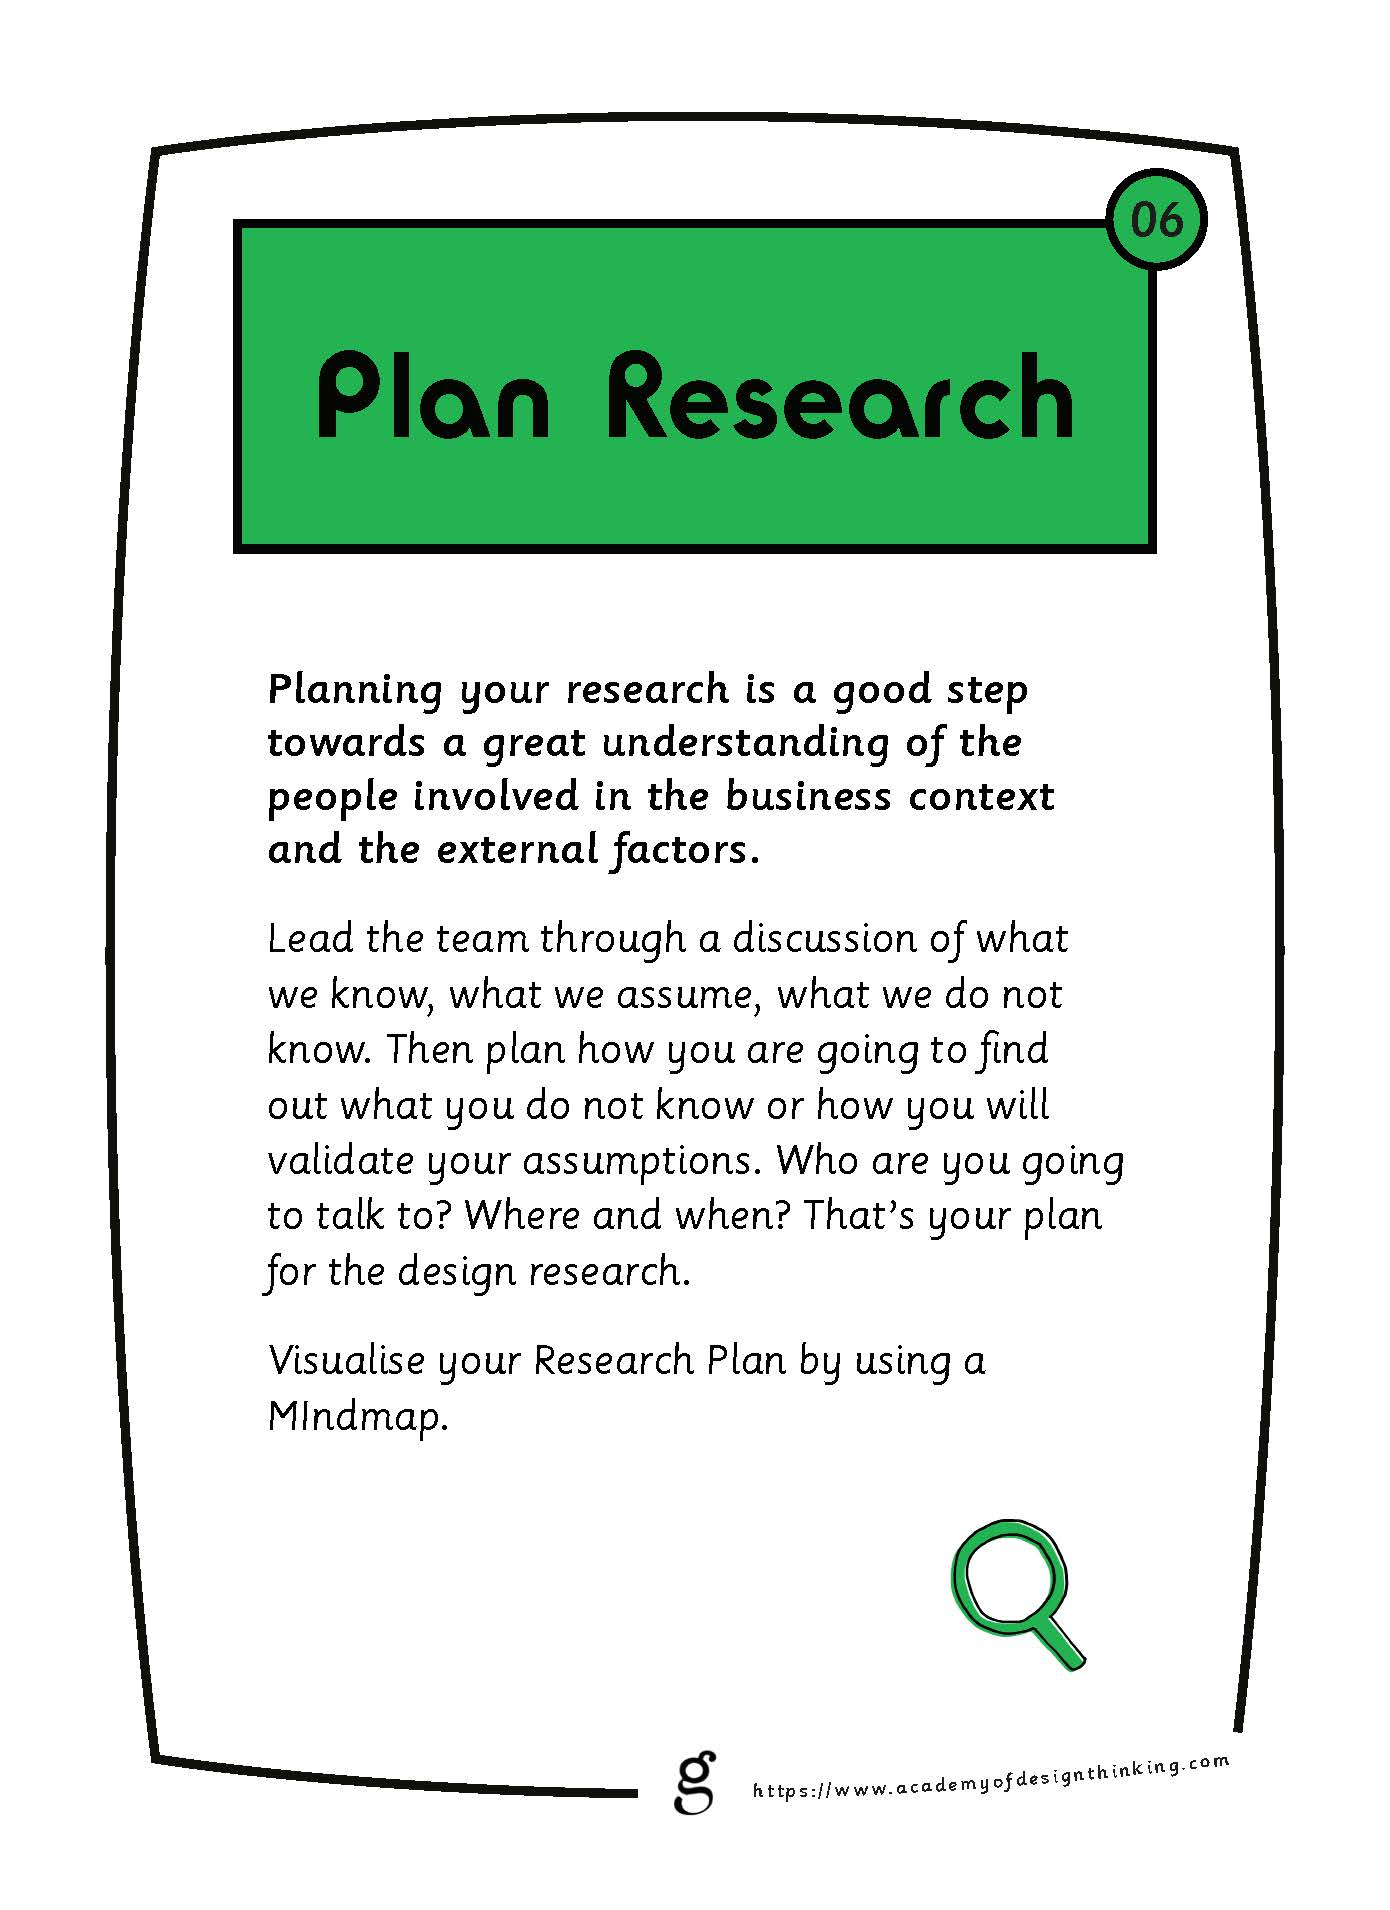 Plan Research